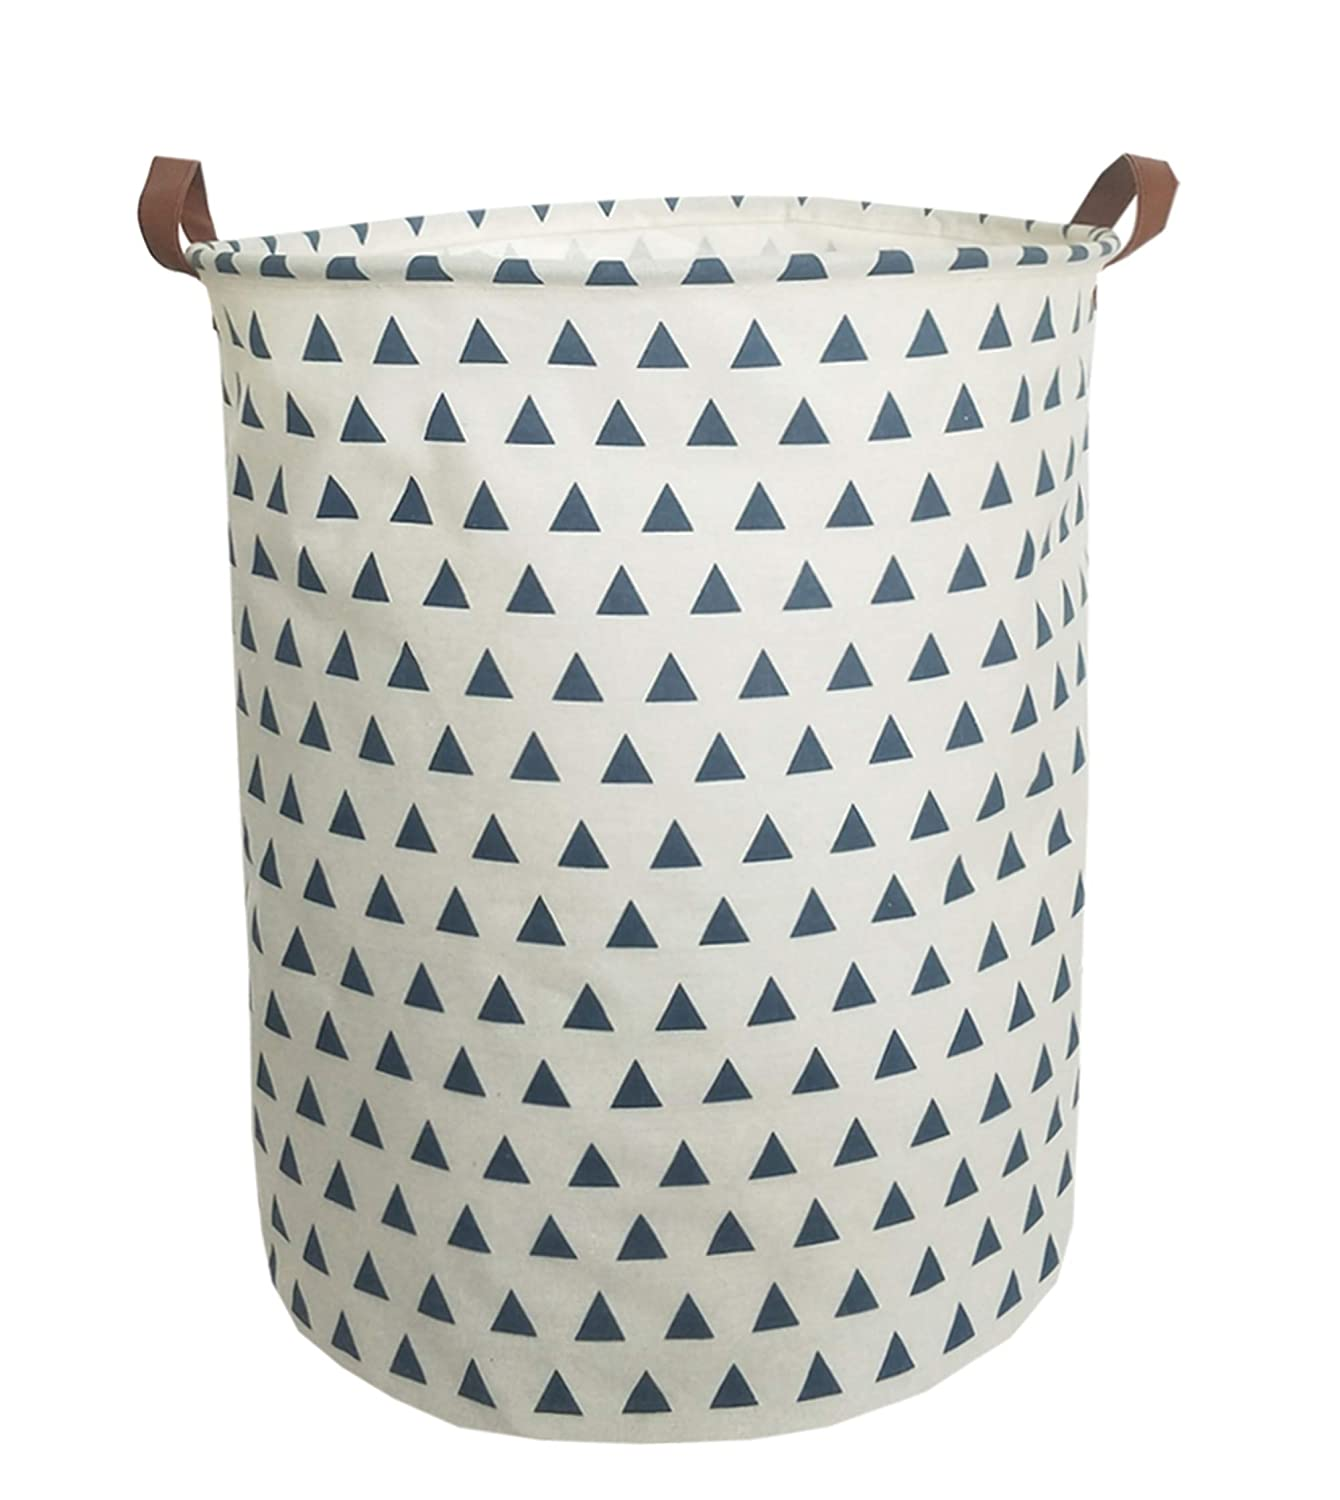 Canvas Fabric Storage Bins Collapsible Laundry Baskets Waterproof with Handle